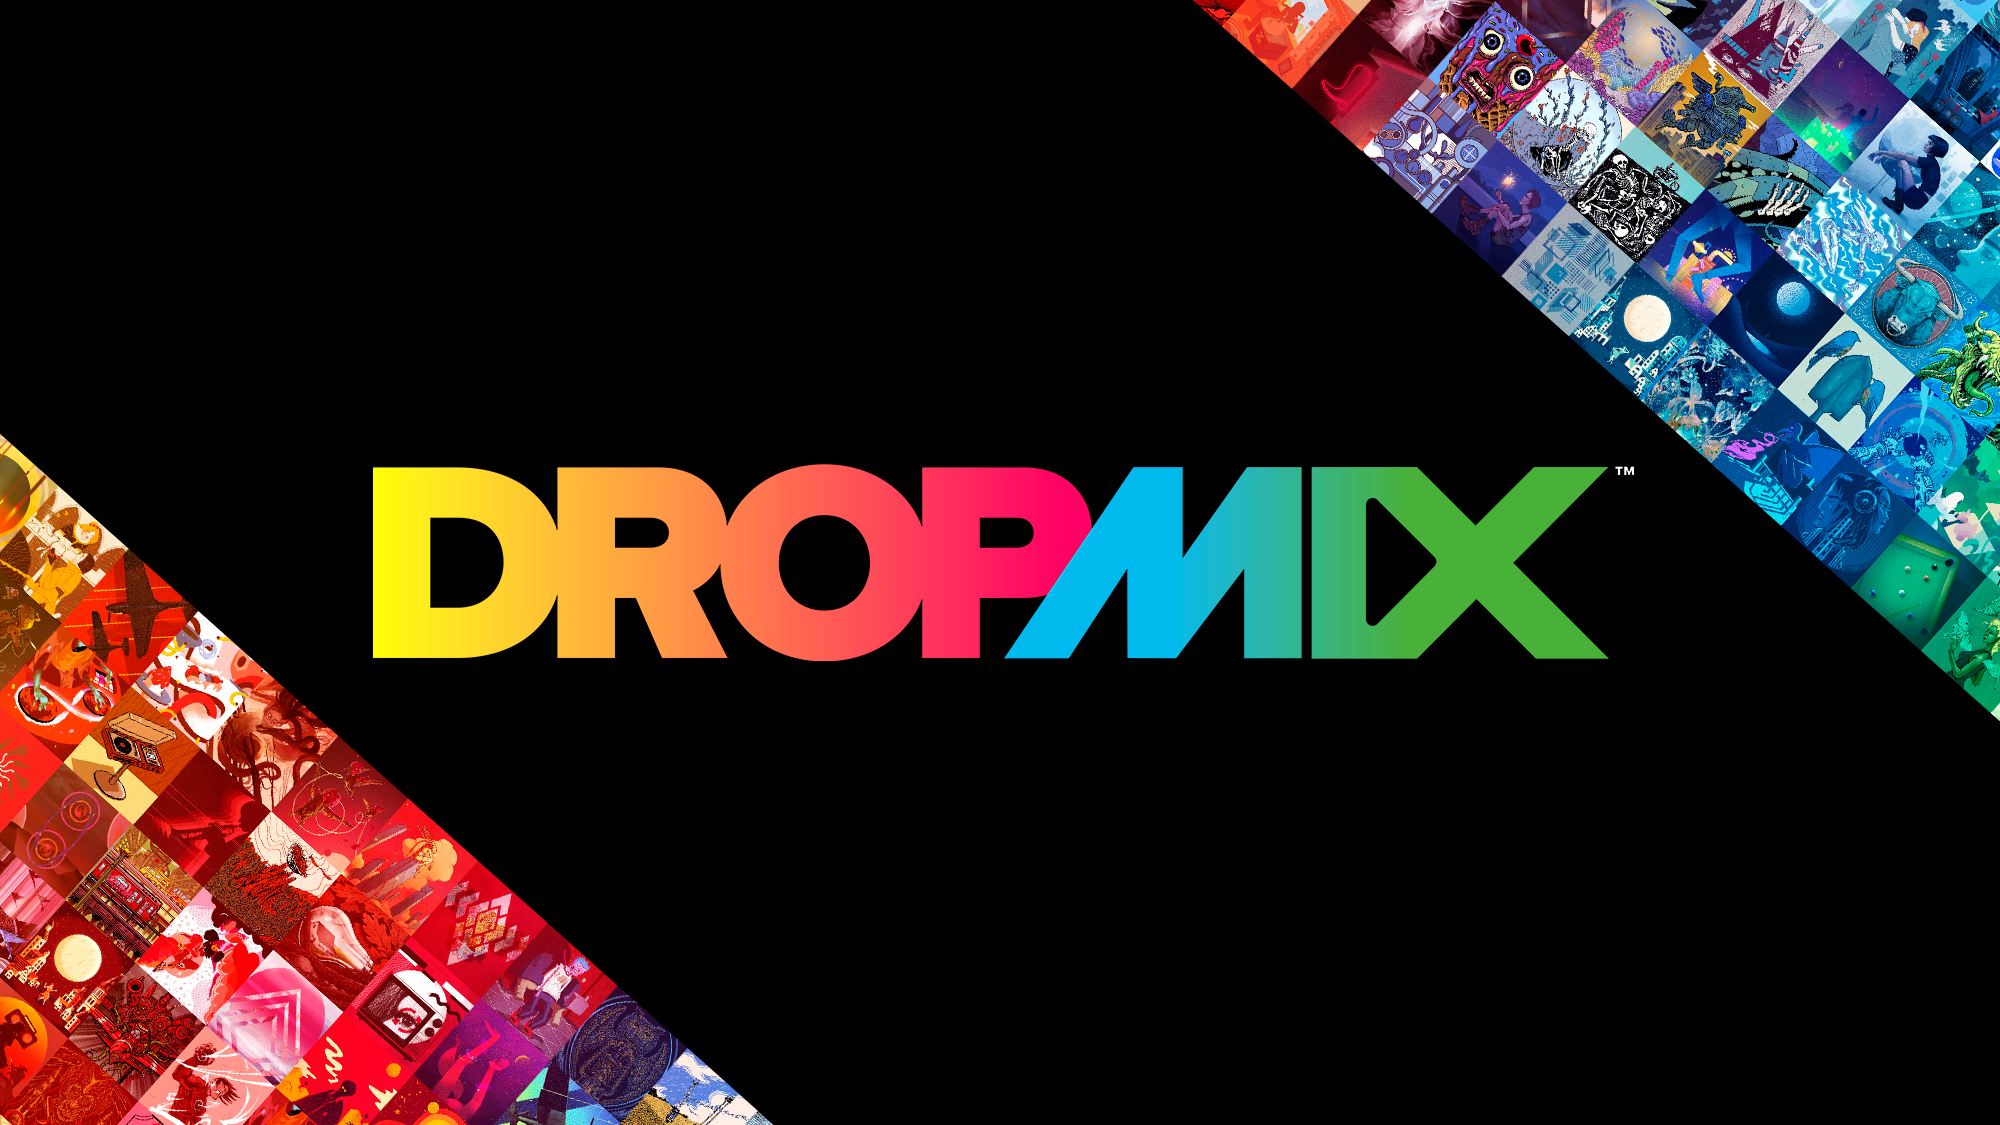 http://webcdn.harmonixmusic.com/media/blog/featured/DropMix_Header_-_TM.png